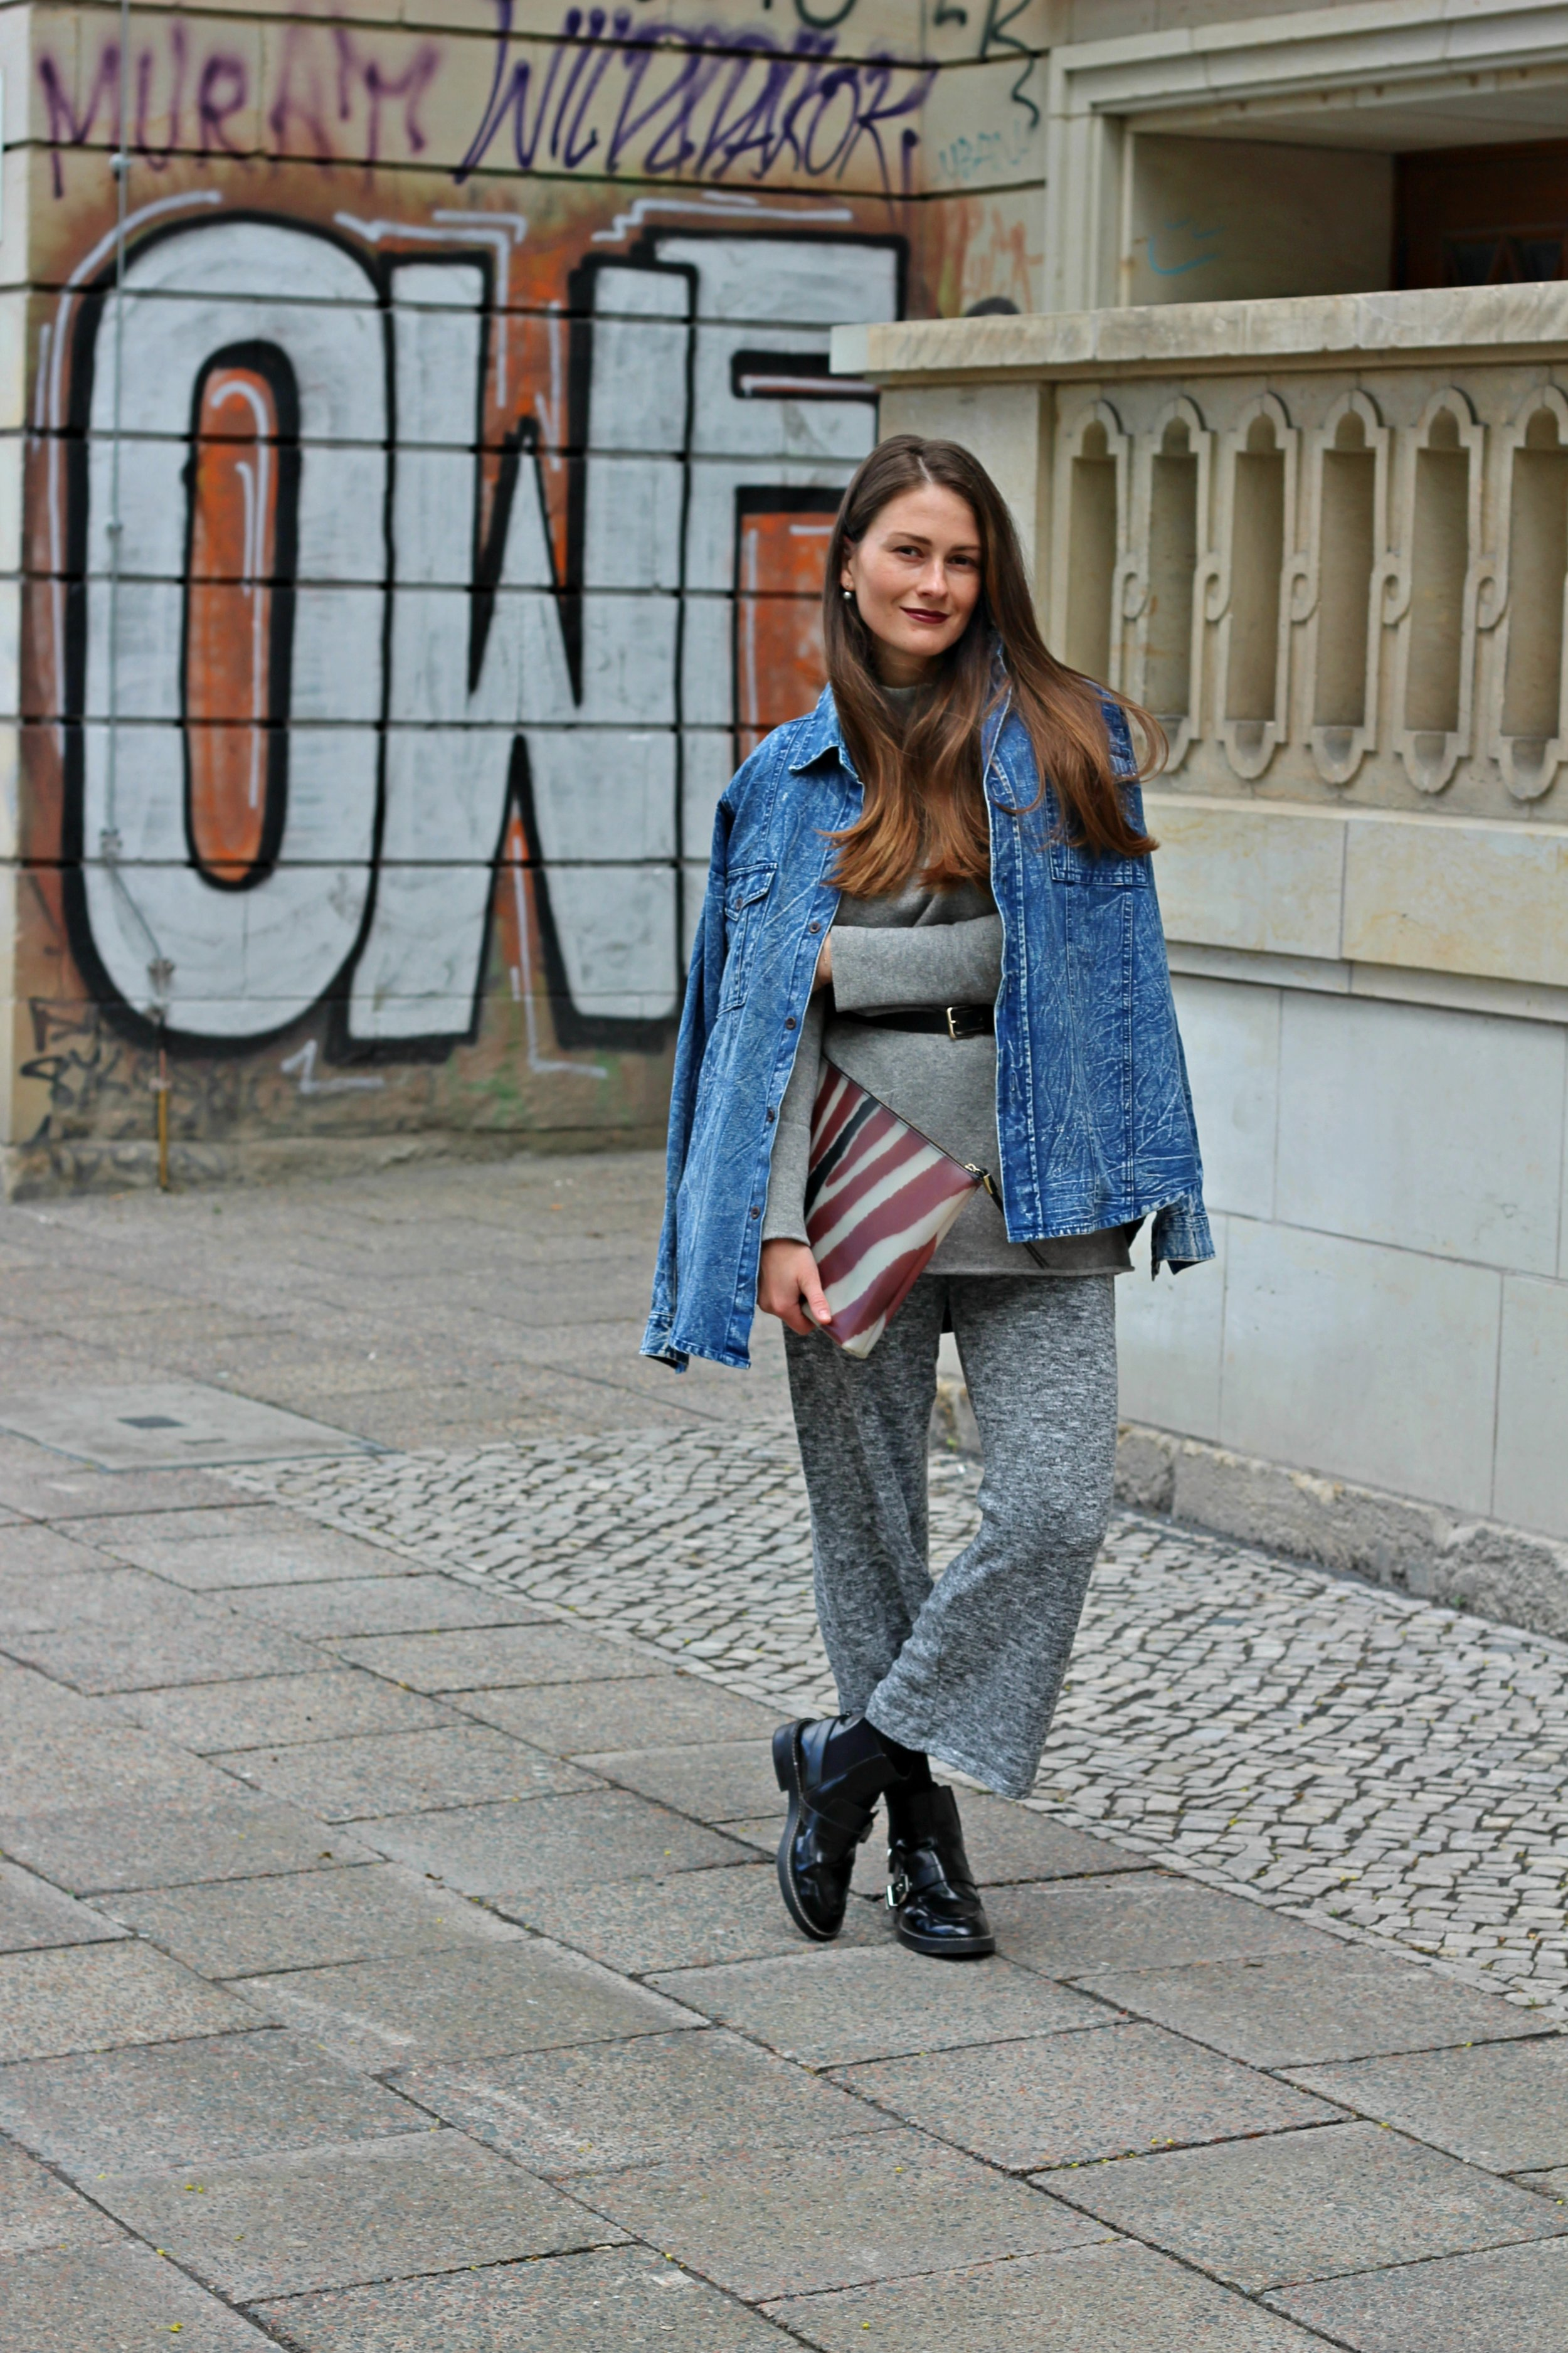 annaporter-denim-jacket-culottes-chelsea-boots-90's-outfit-style-fashion-blogger